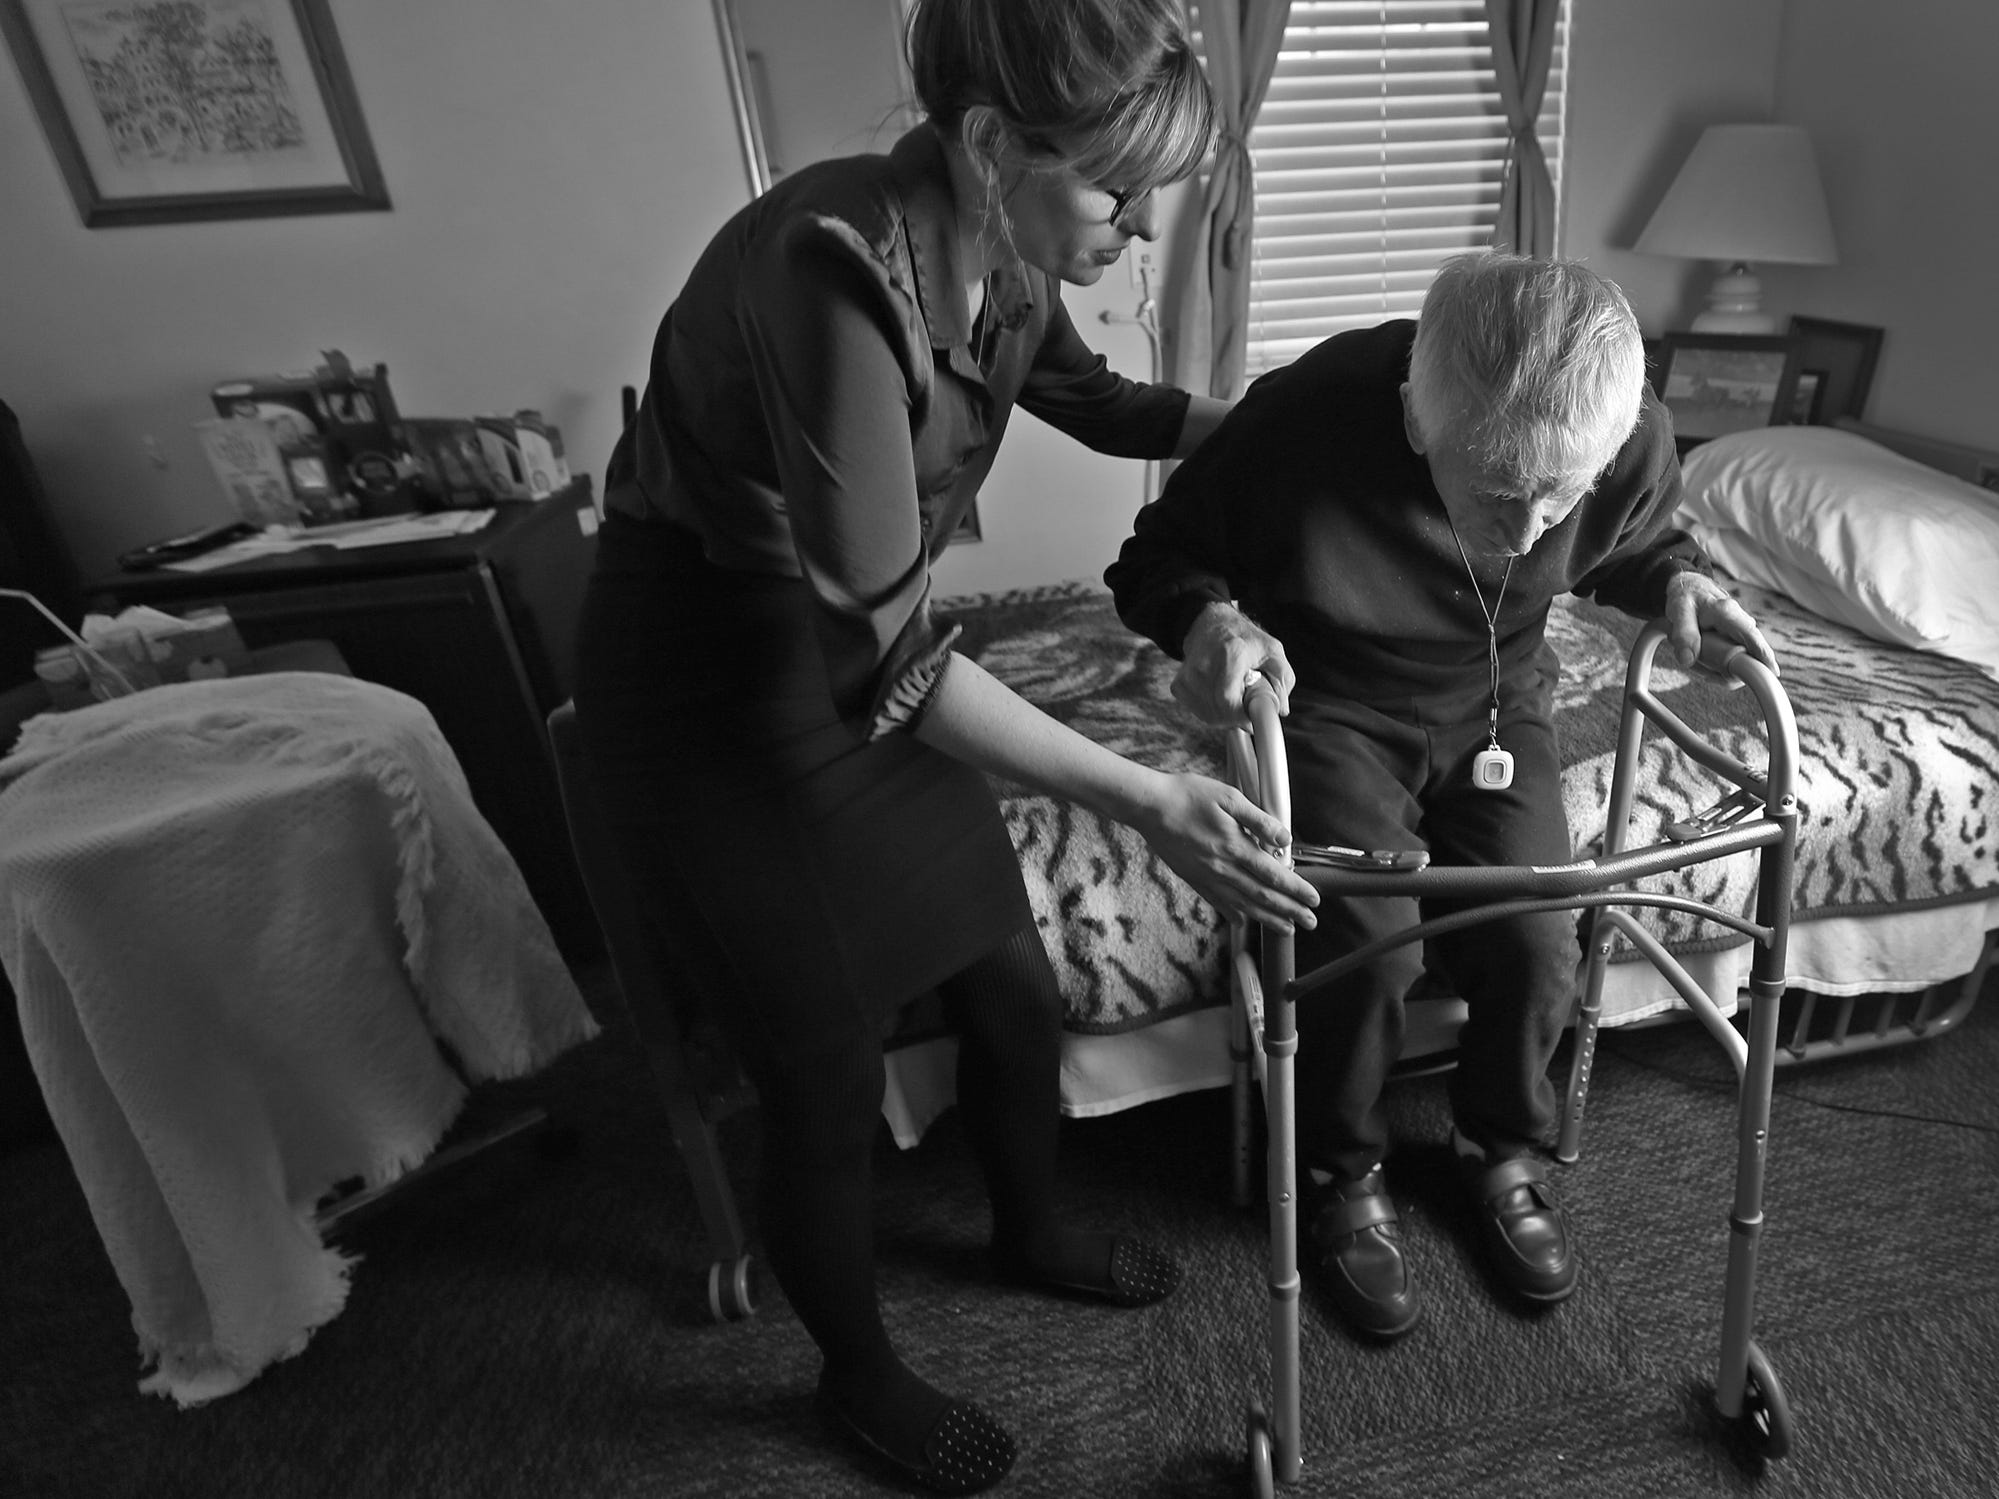 Madison Gonzalez, Morning Light's Community Involvement and Event Manager, left, helps Dewey Logeland in his room at the Abbie Hunt Bryce Home, Friday, April 20, 2018.  The home offers hospice for the dying poor.